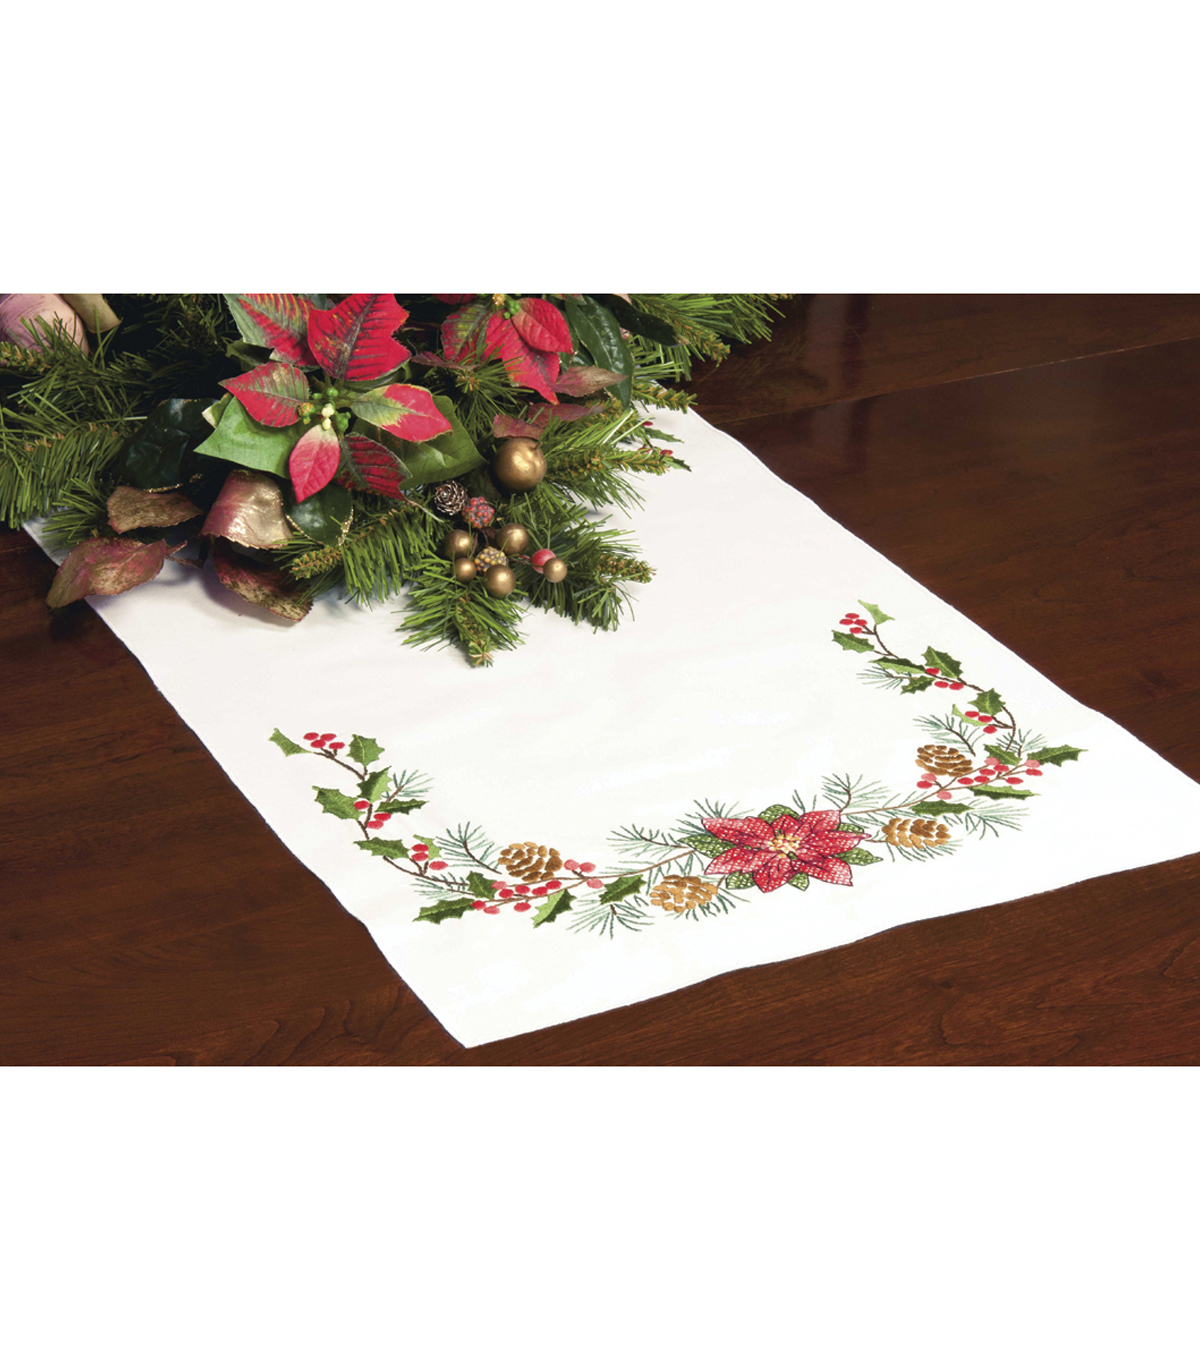 Stamped Cross Stitch Table Runner 15\u0022X44\u0022-Christmas Greens